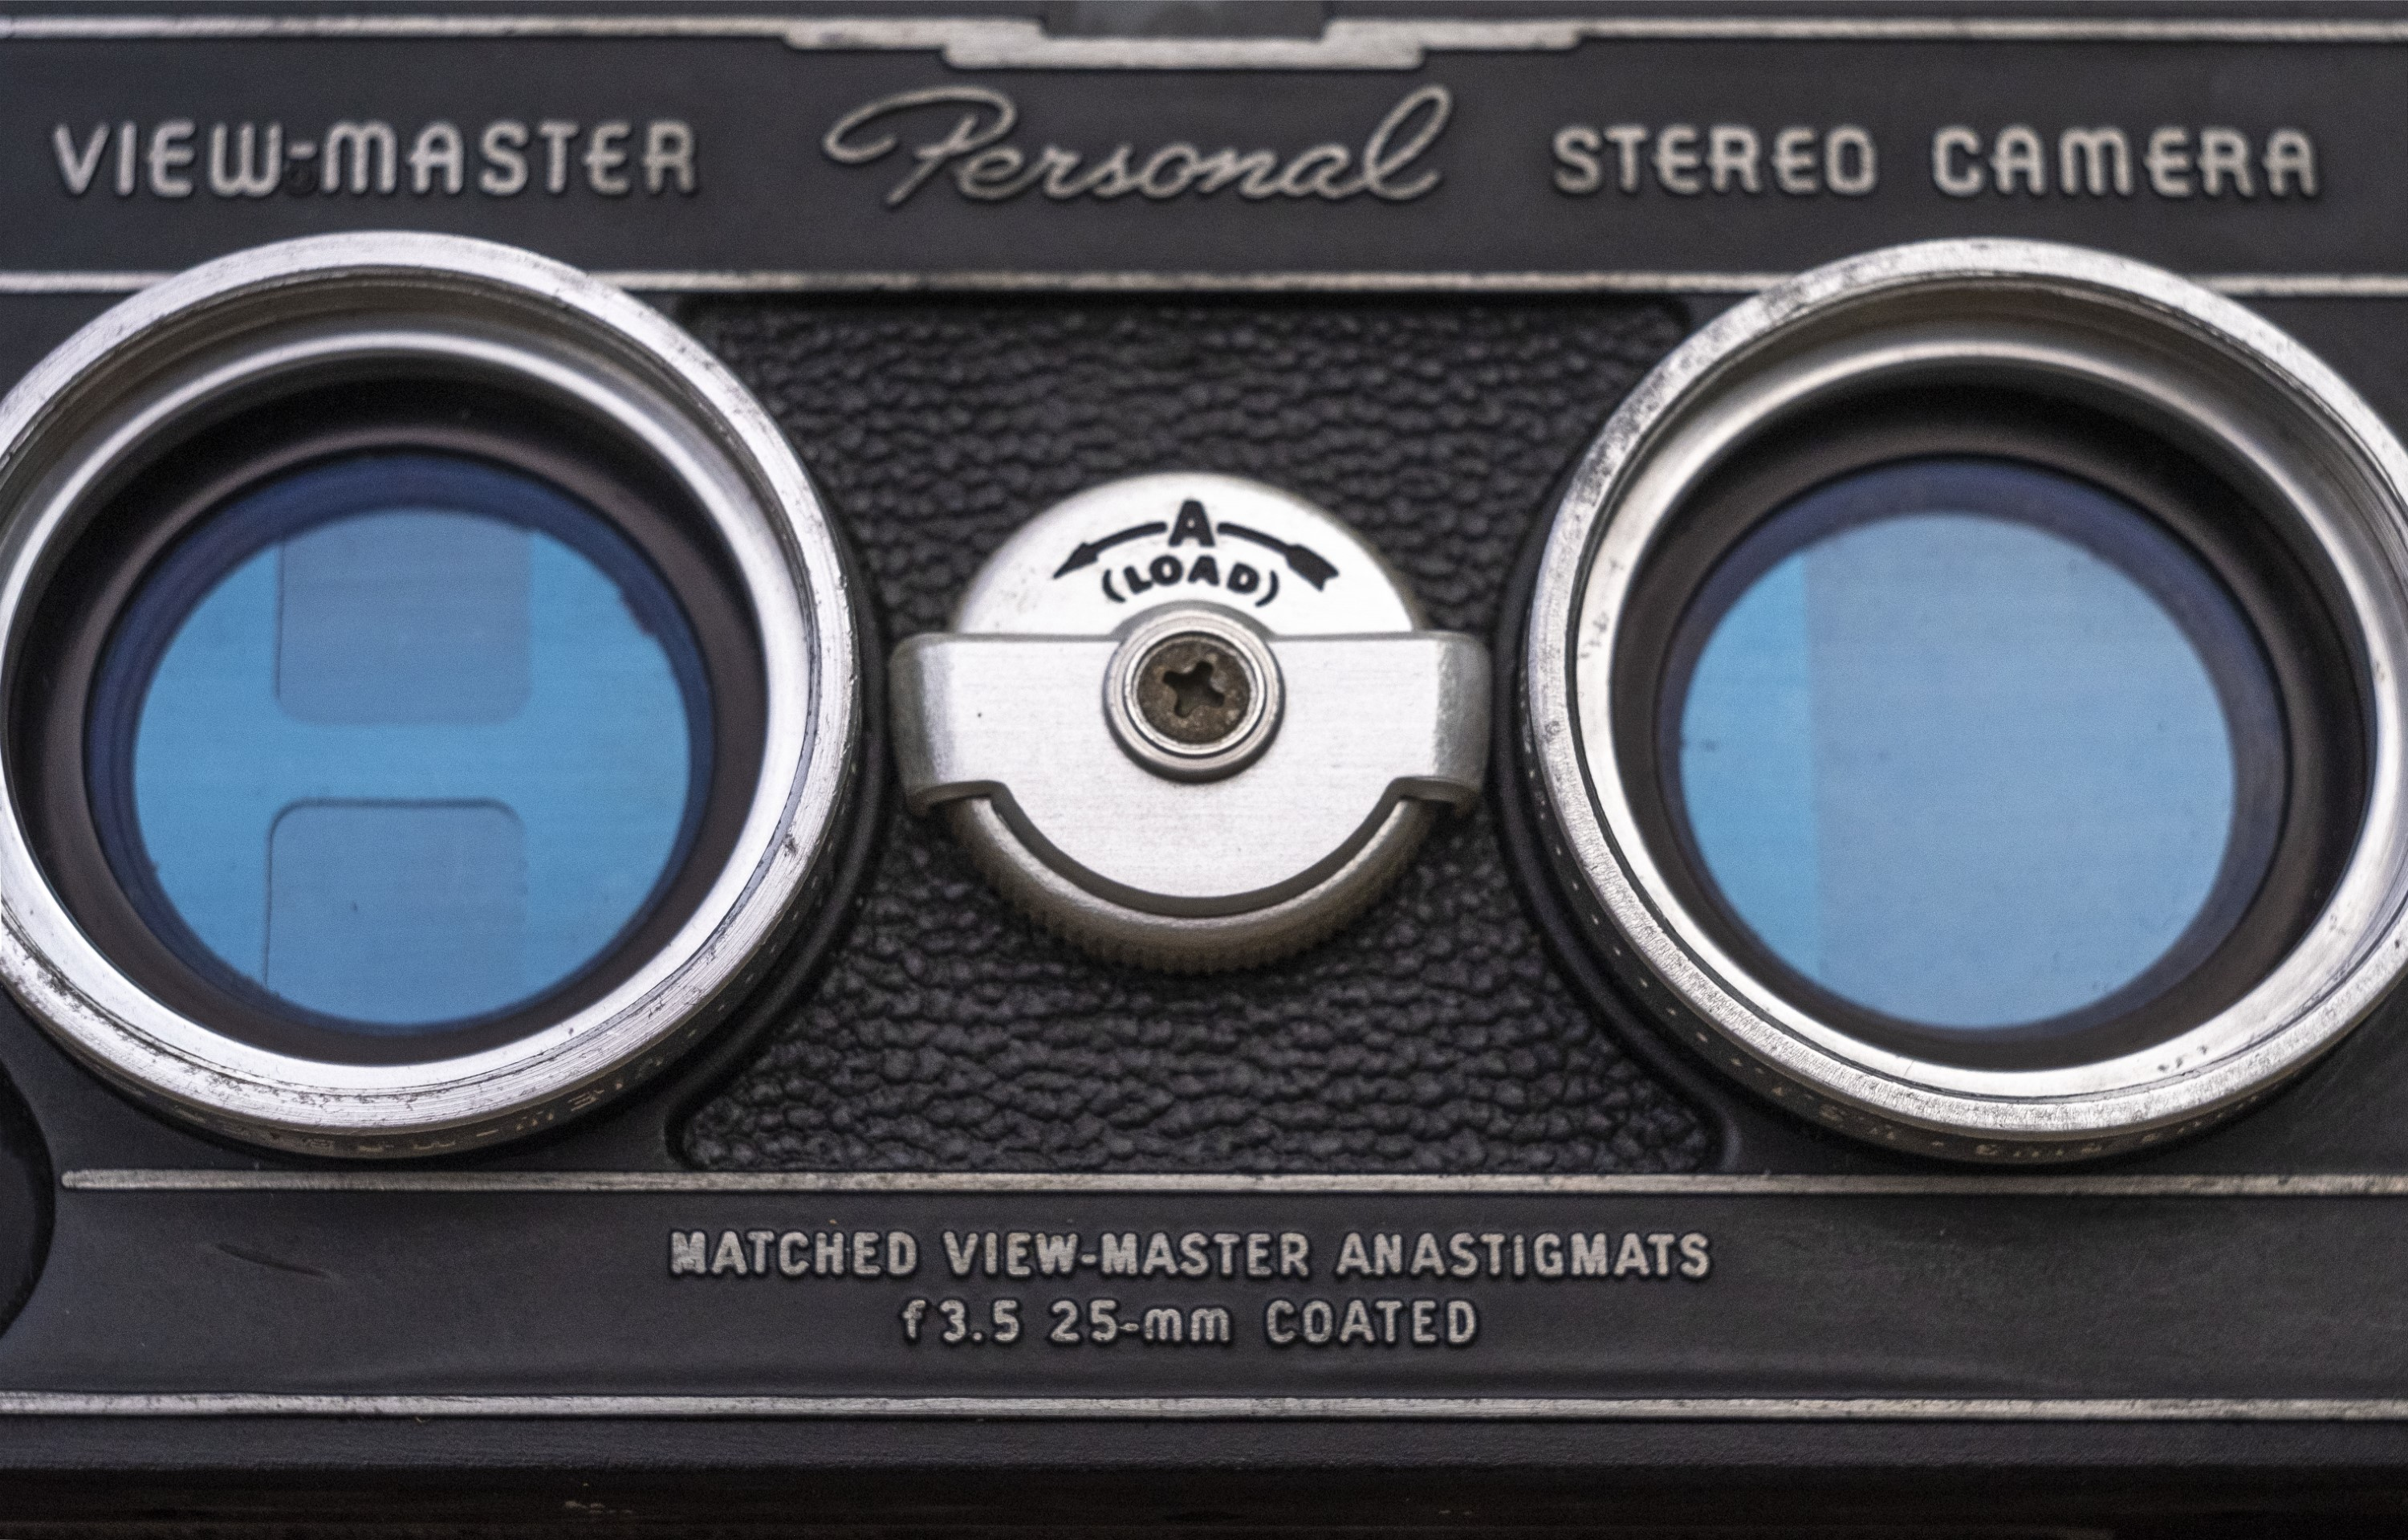 Sawyer's View-Master Personal Stereo Camera